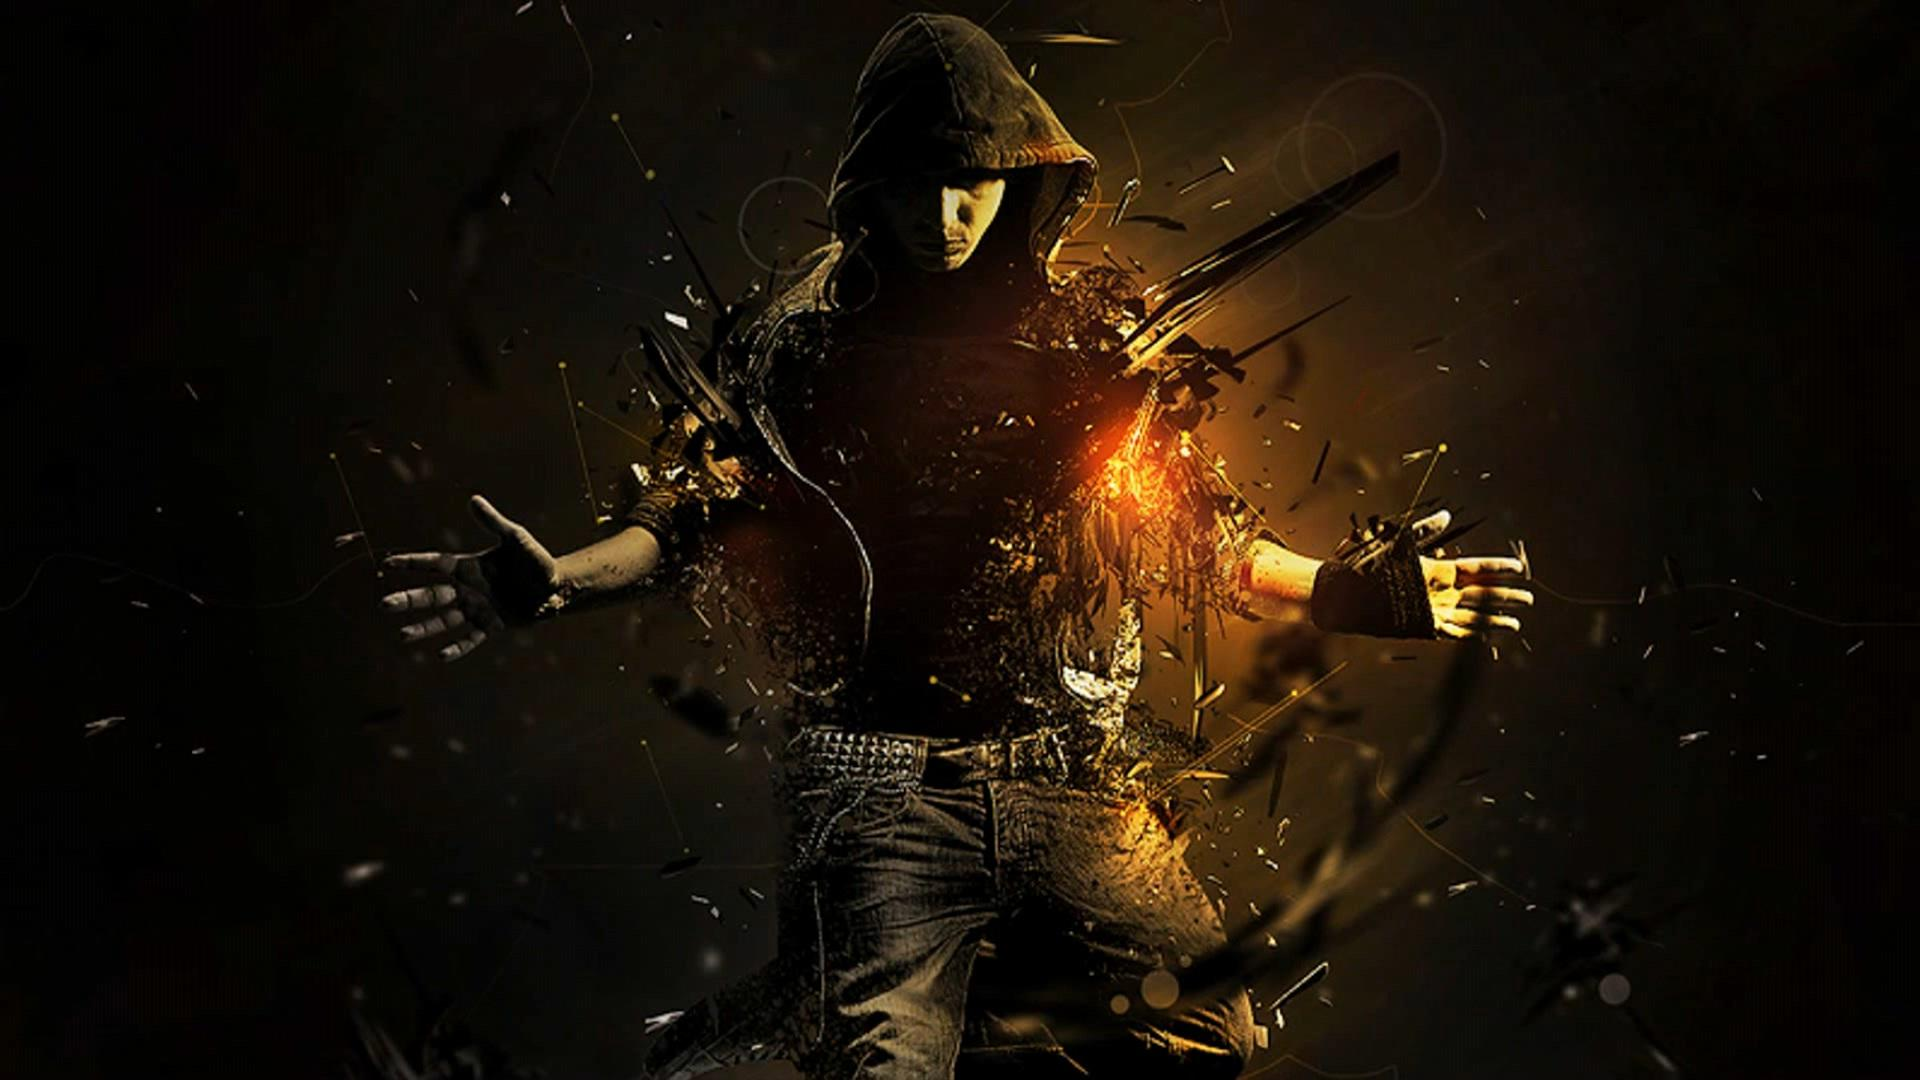 cool wallpapers creative